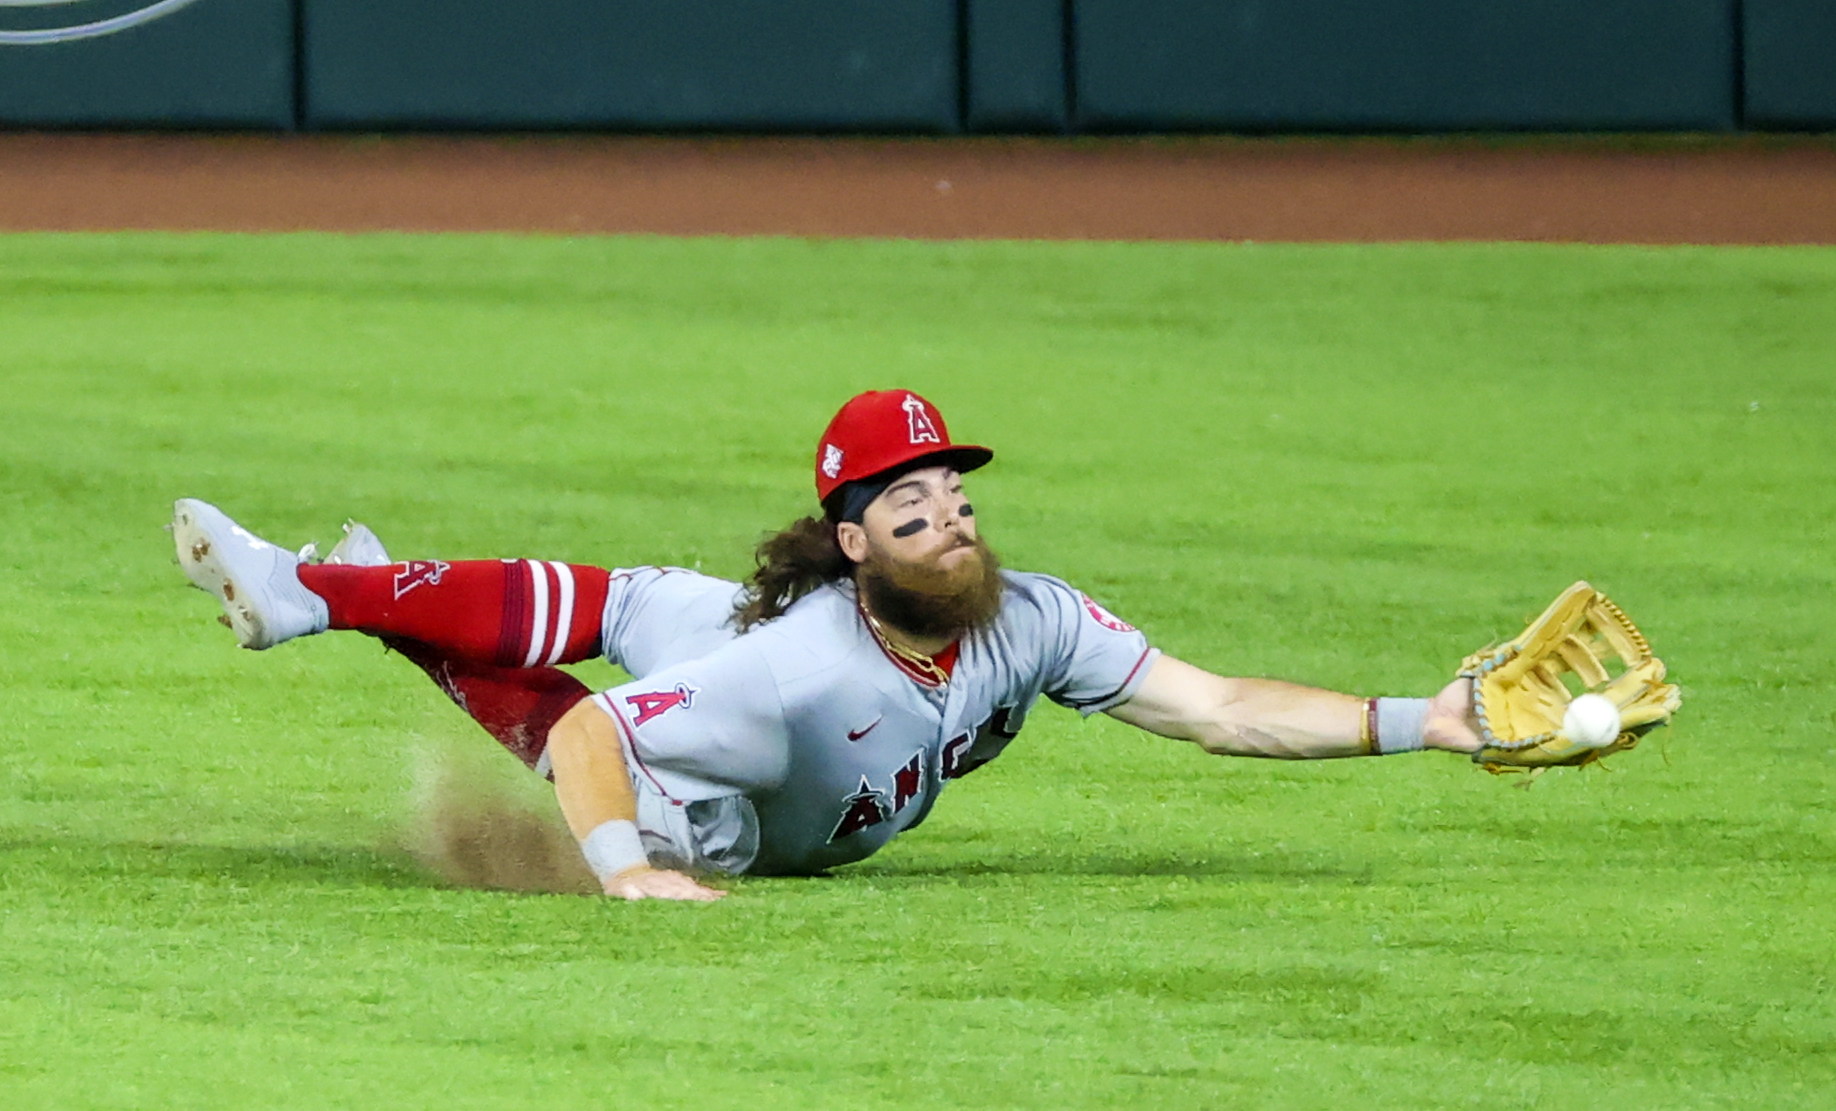 Los Angeles Angels vs Los Angeles Dodgers Prediction, 8/8/2021 MLB Pick, Tips and Odds